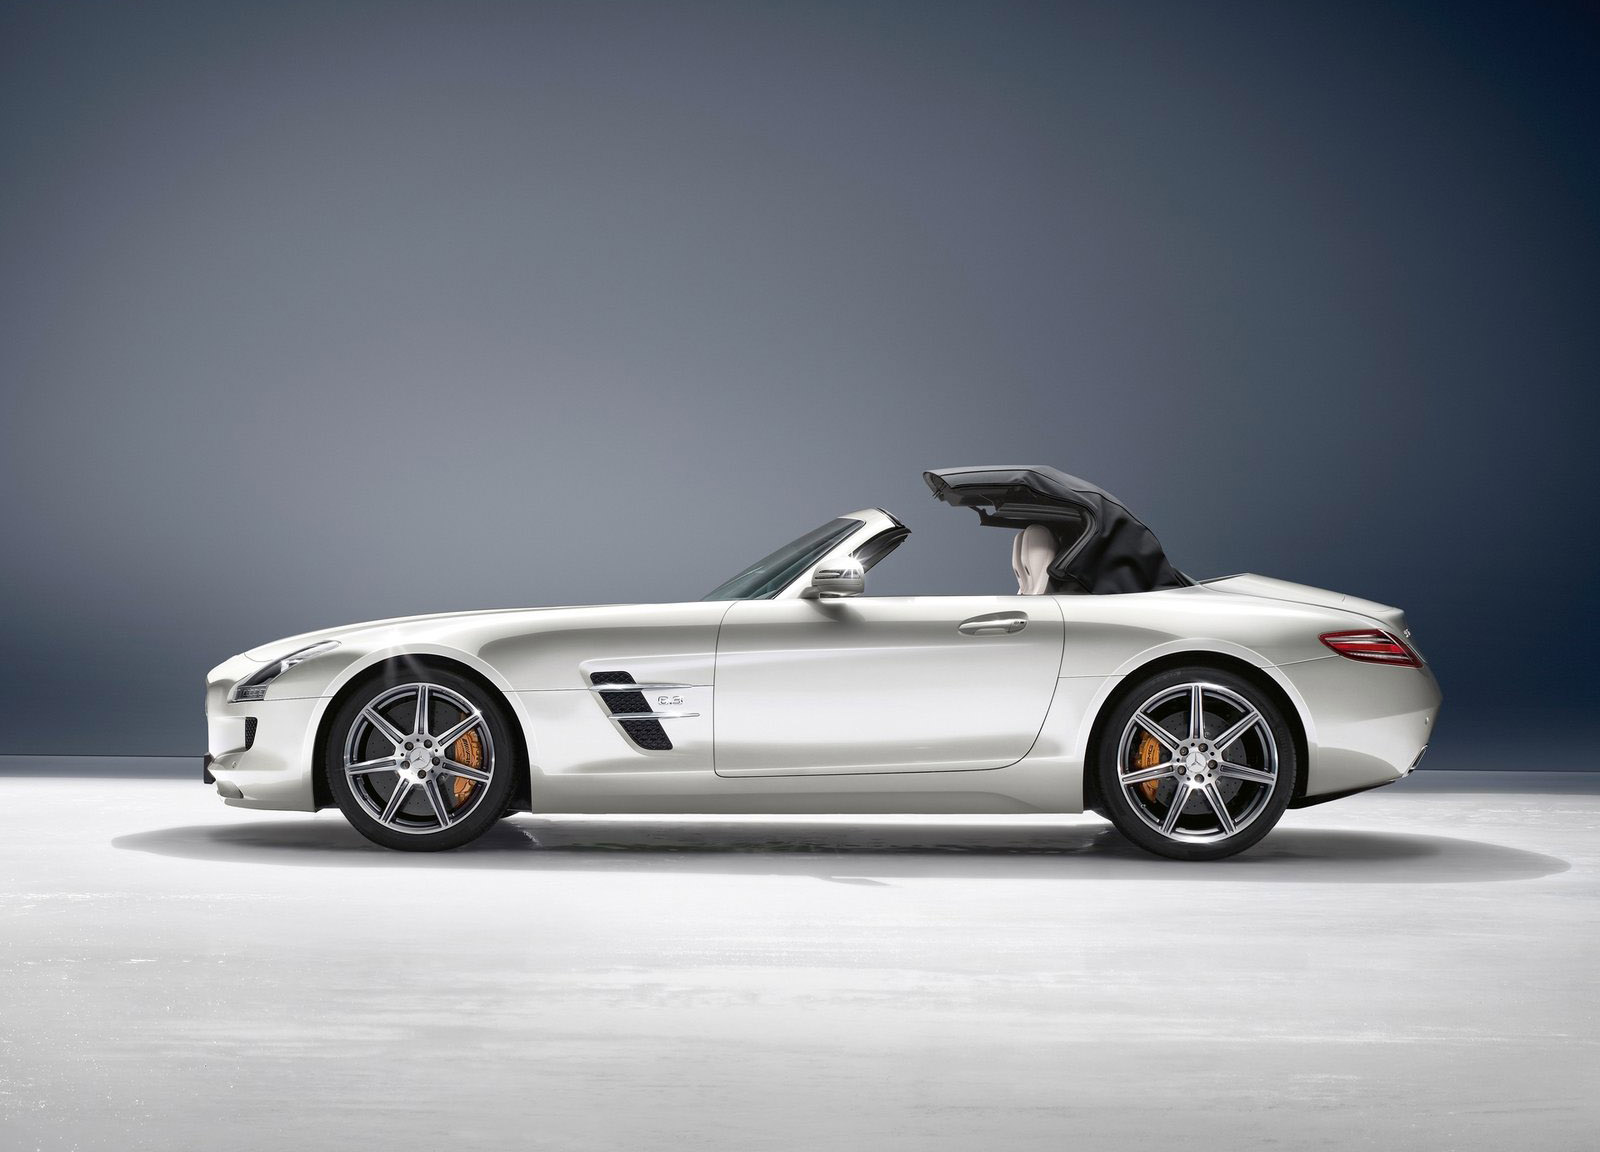 Wallpapers Hd For Mac 2013 Mercedes Benz Sls Amg Gt Roadster White